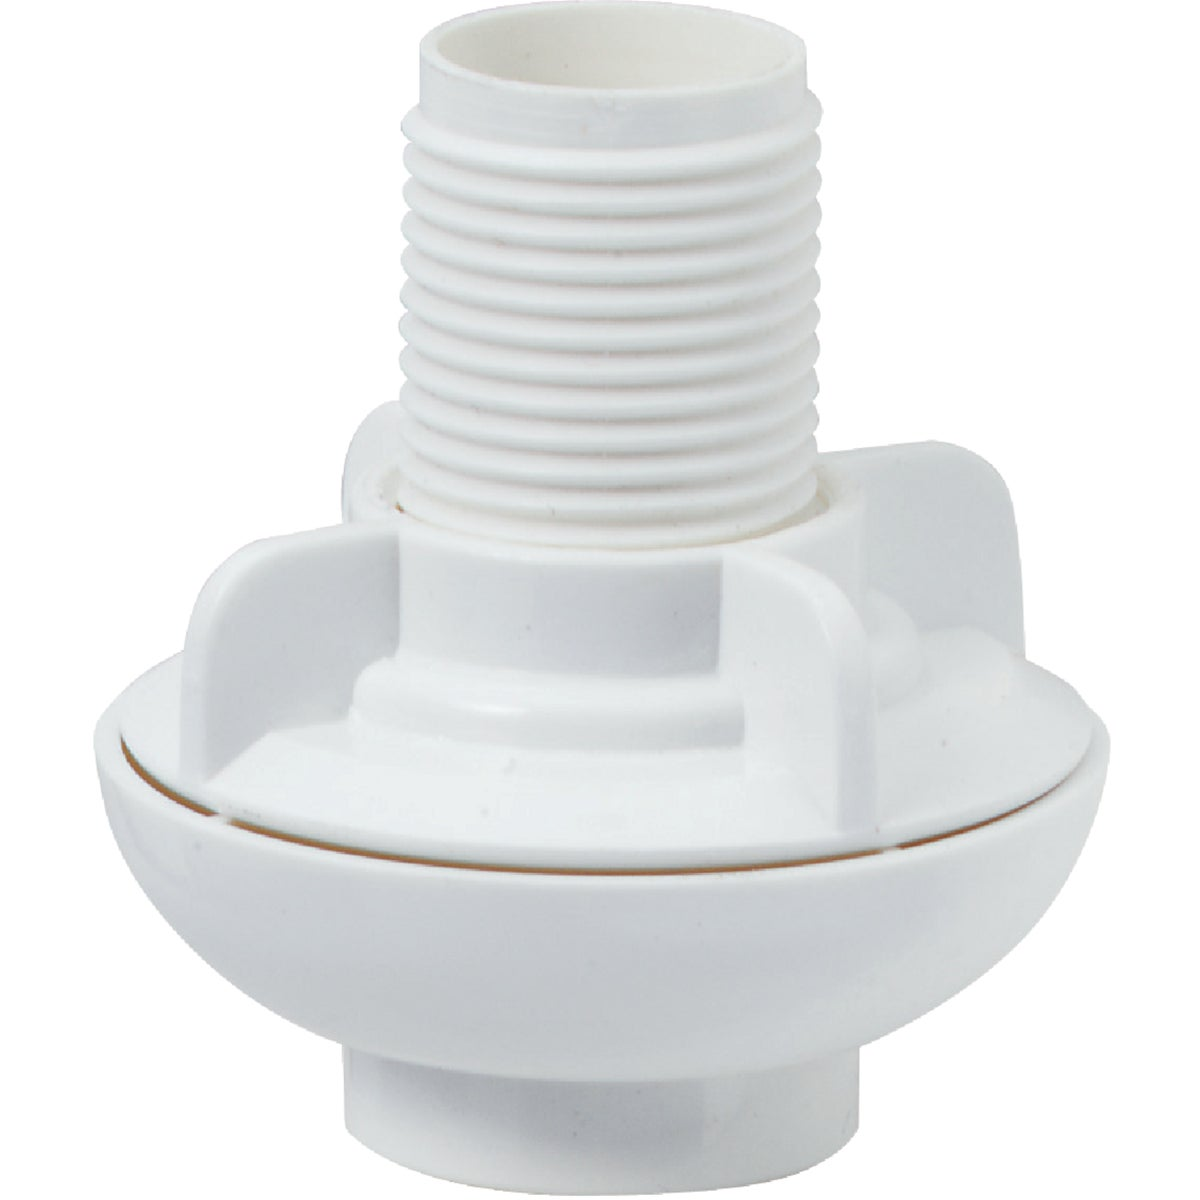 WHT SPRAY HOLDER - 414980 by Do it Best